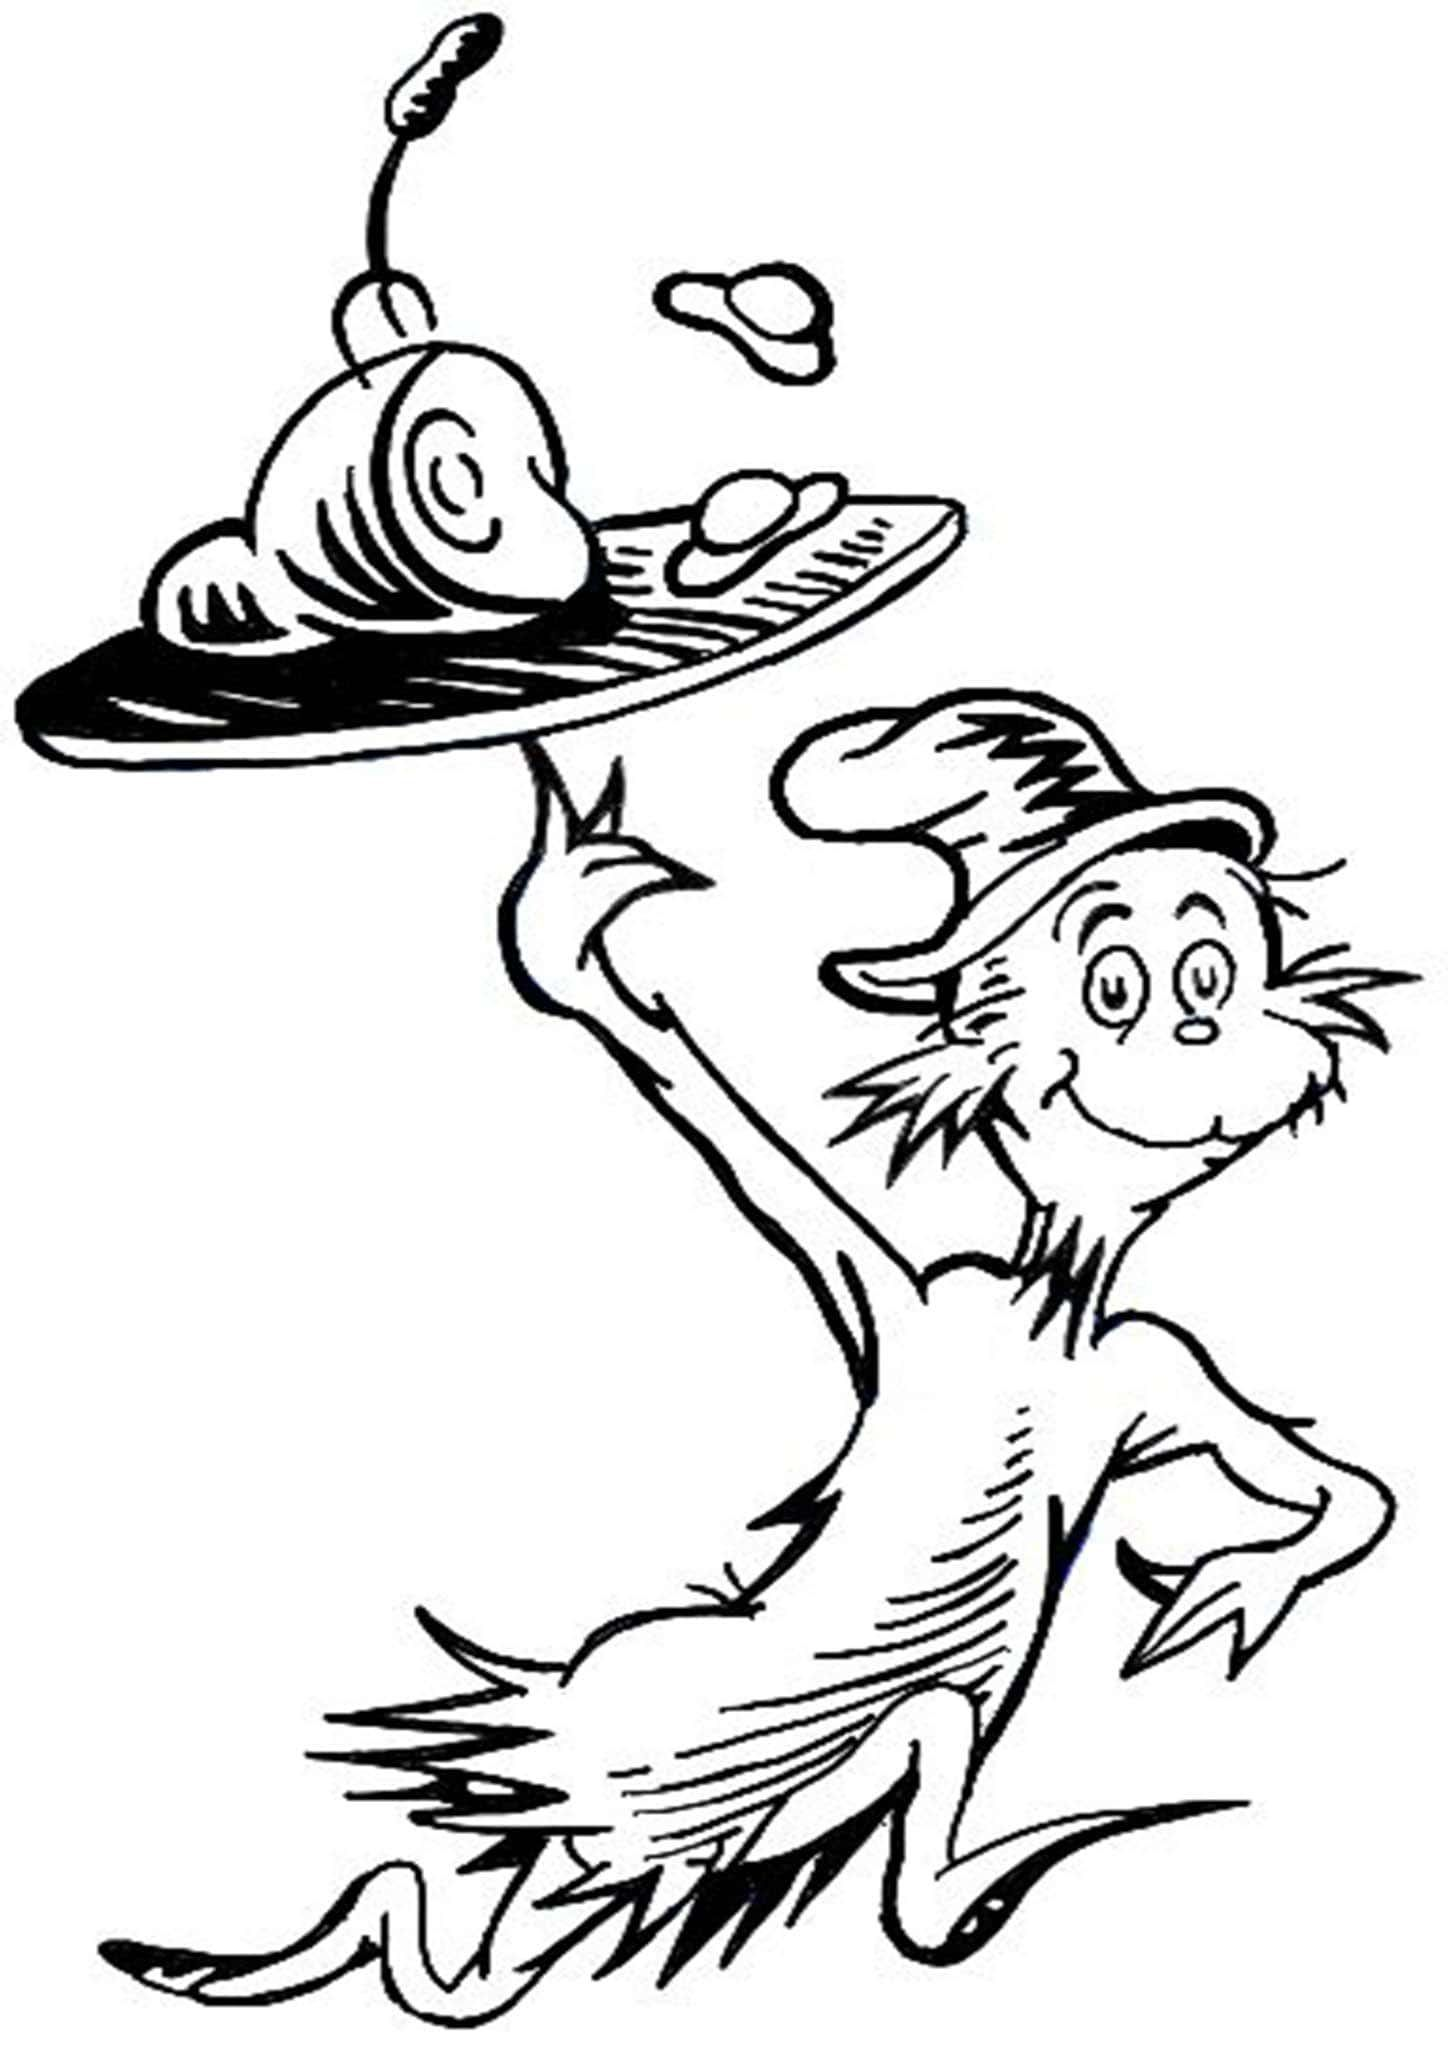 Free Easy To Print Cat In The Hat Coloring Pages In 2020 Dr Seuss Coloring Pages Dr Seuss Coloring Sheet Dr Seuss Crafts